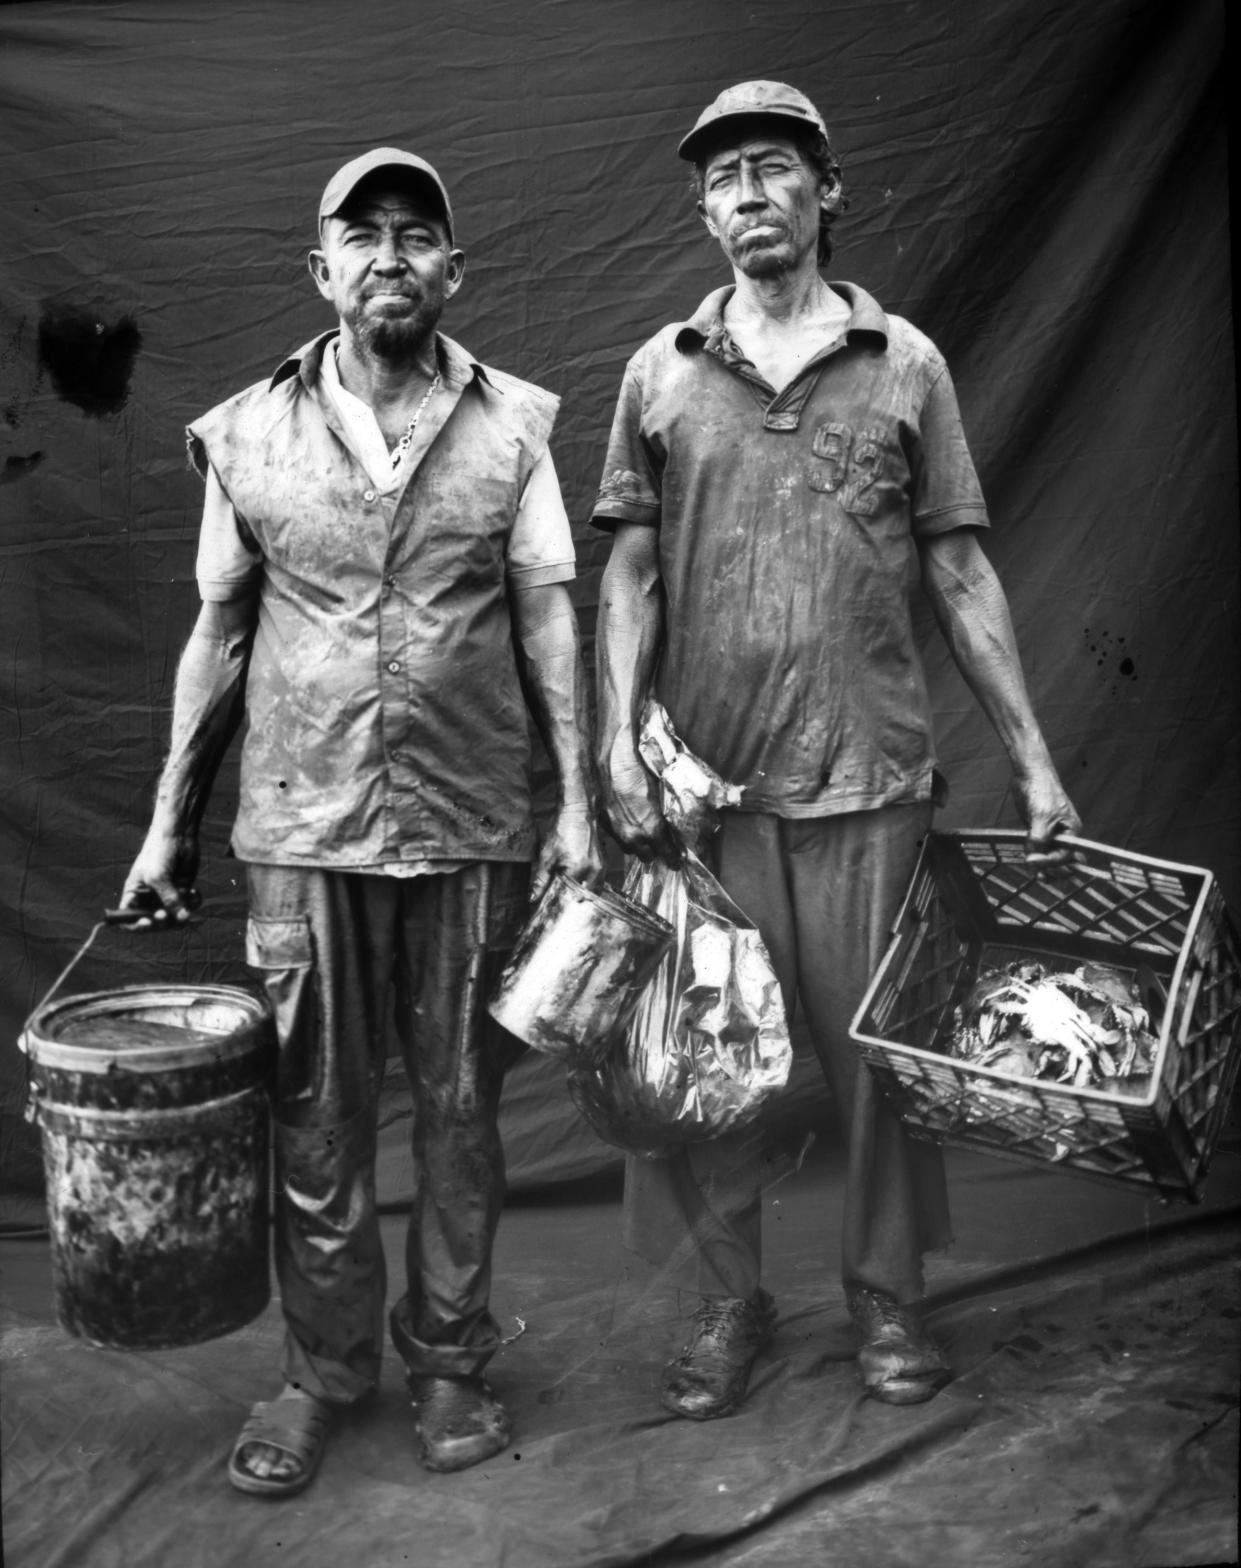 Fisherman Antonio Tello, left, poses for a portrait with his brother after harvesting crabs in oil-contaminated Lake Maracaibo in Cabimas, Venezuela. (Photo: Rodrigo Abd/AP)